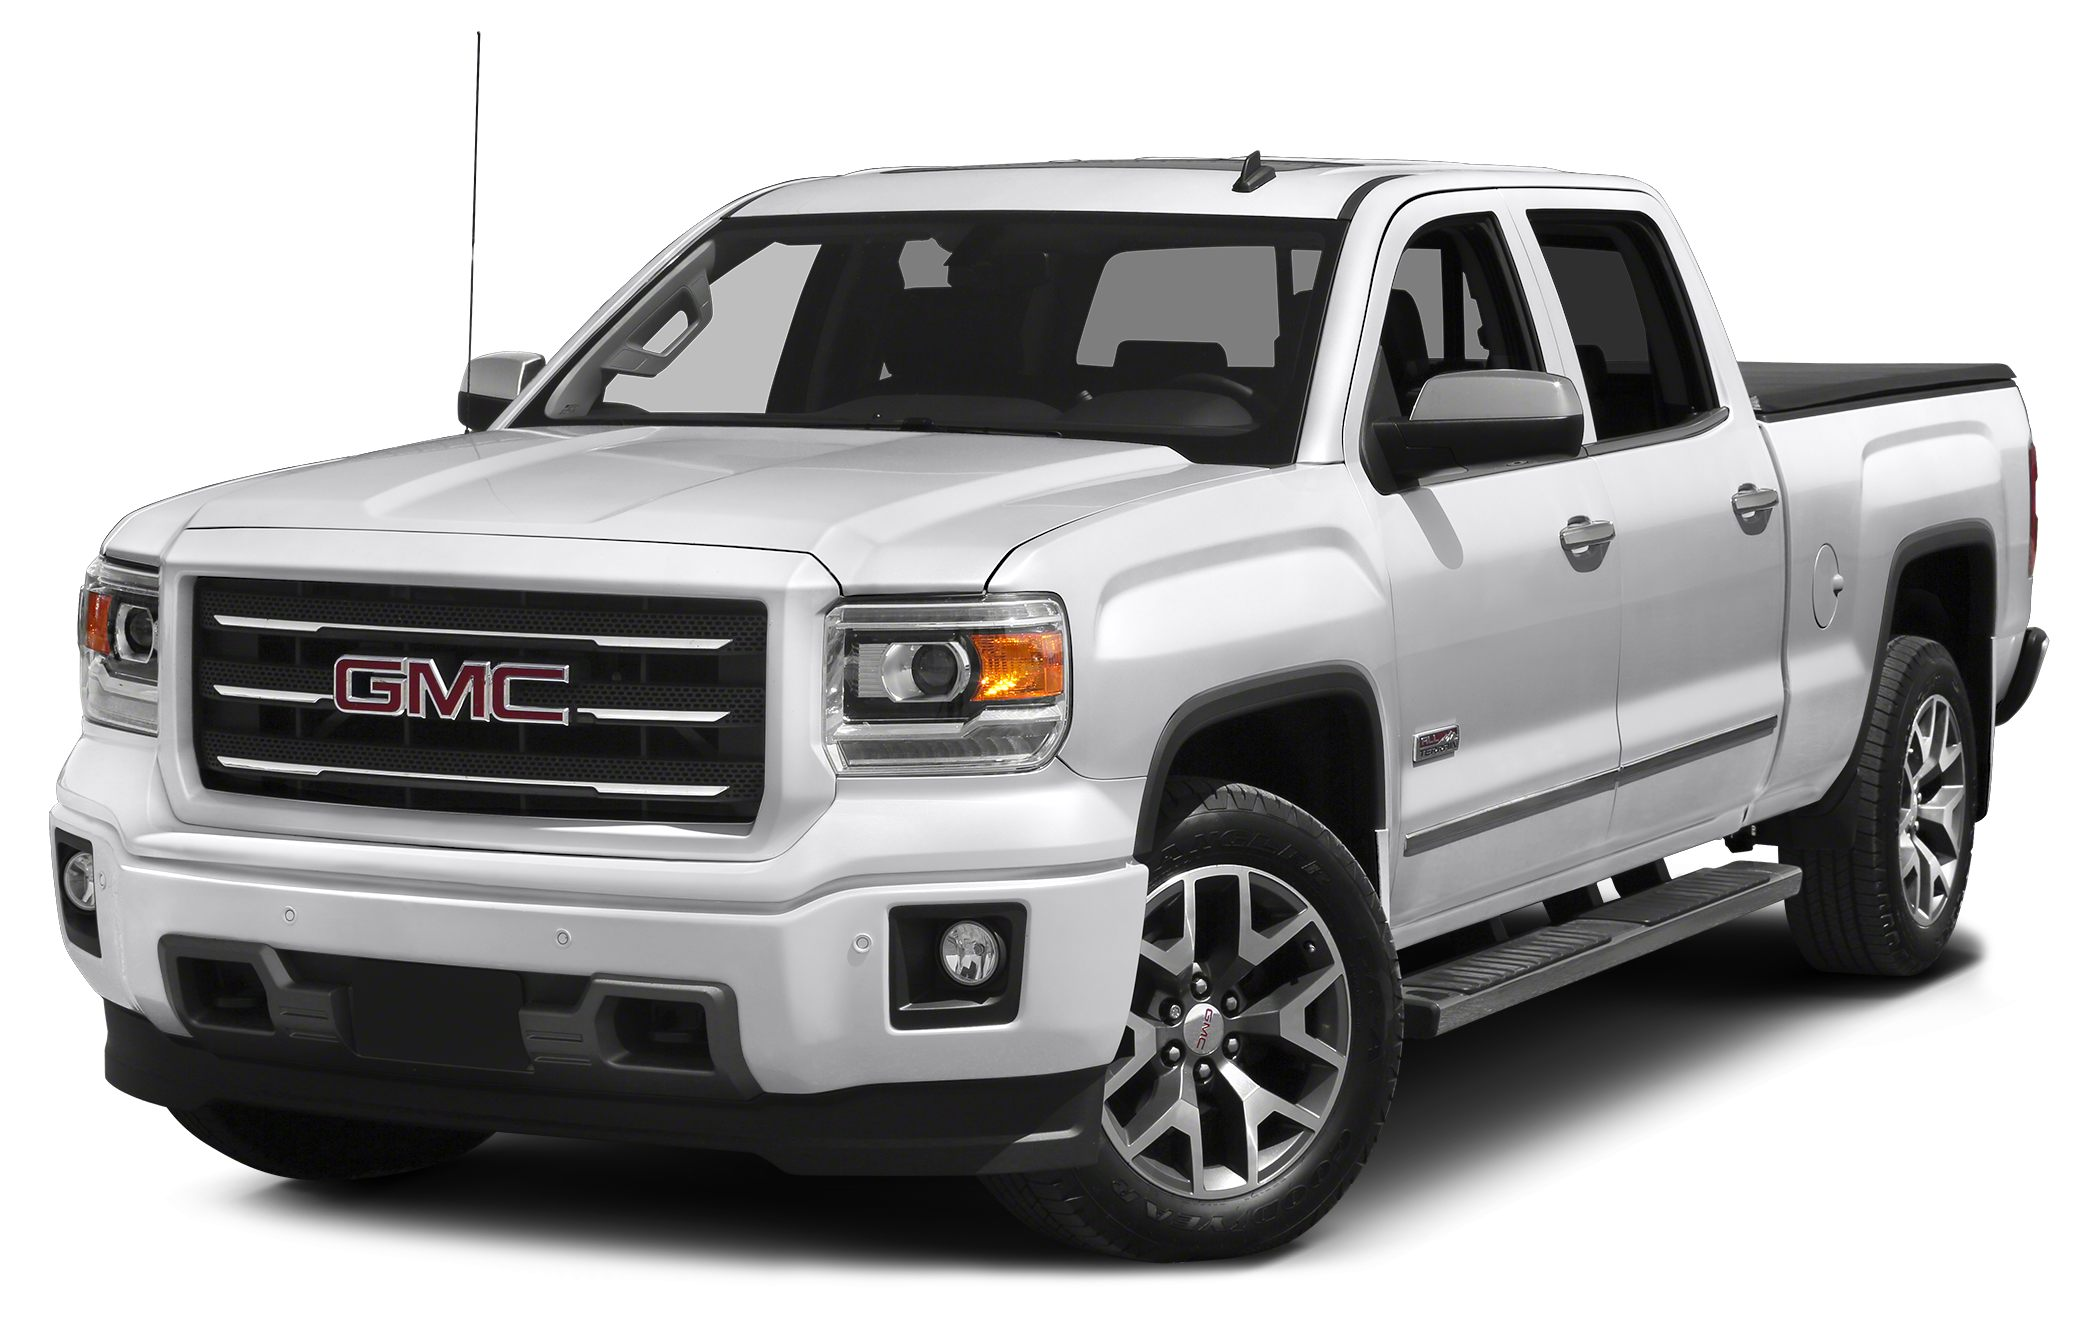 2014 GMC Sierra 1500 Base Excellent Condition ONLY 8121 Miles FUEL EFFICIENT 24 MPG Hwy18 MPG